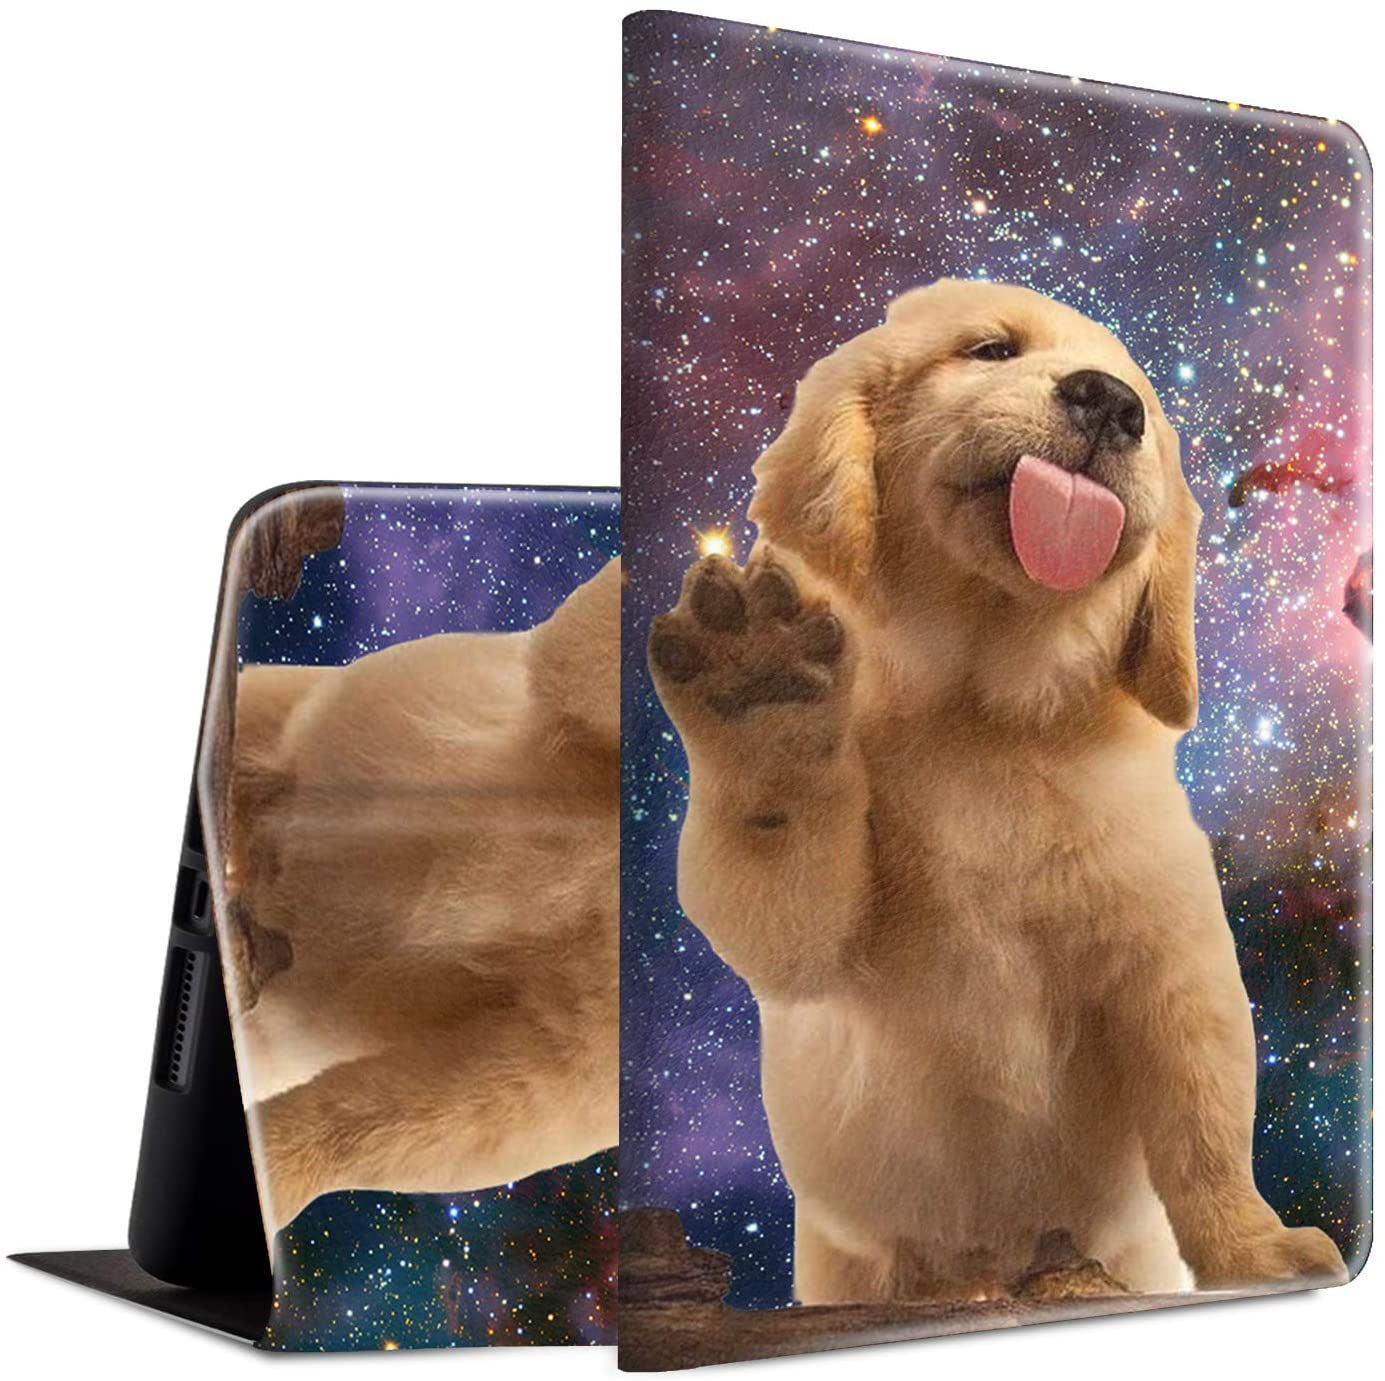 iPad 10.2 2019 Case, Spsun Lightweight PU Leather Folio Cover Adjustable Stand with Auto Wake/Sleep Smart Protect Case for Apple iPad 10.2 Inch 7th Generation 2019 - Golden Retriever Puppy Dog